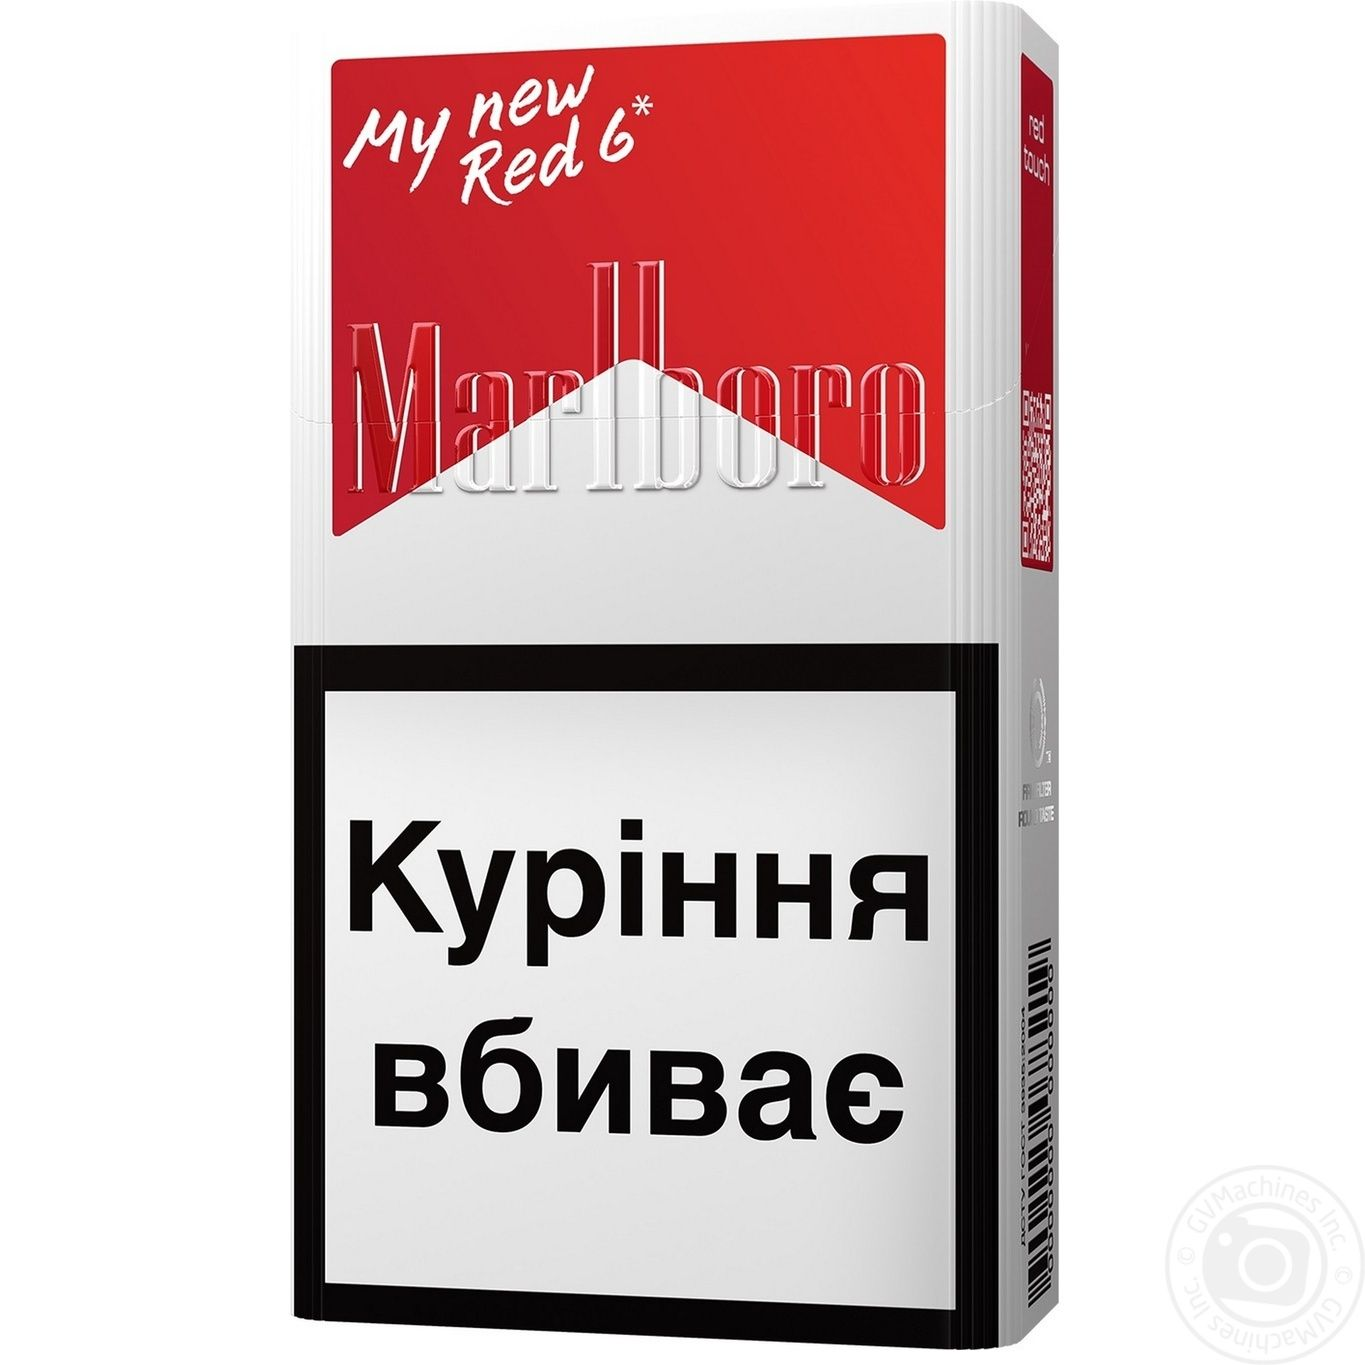 Menthol cigarettes Marlboro brands in Kansas